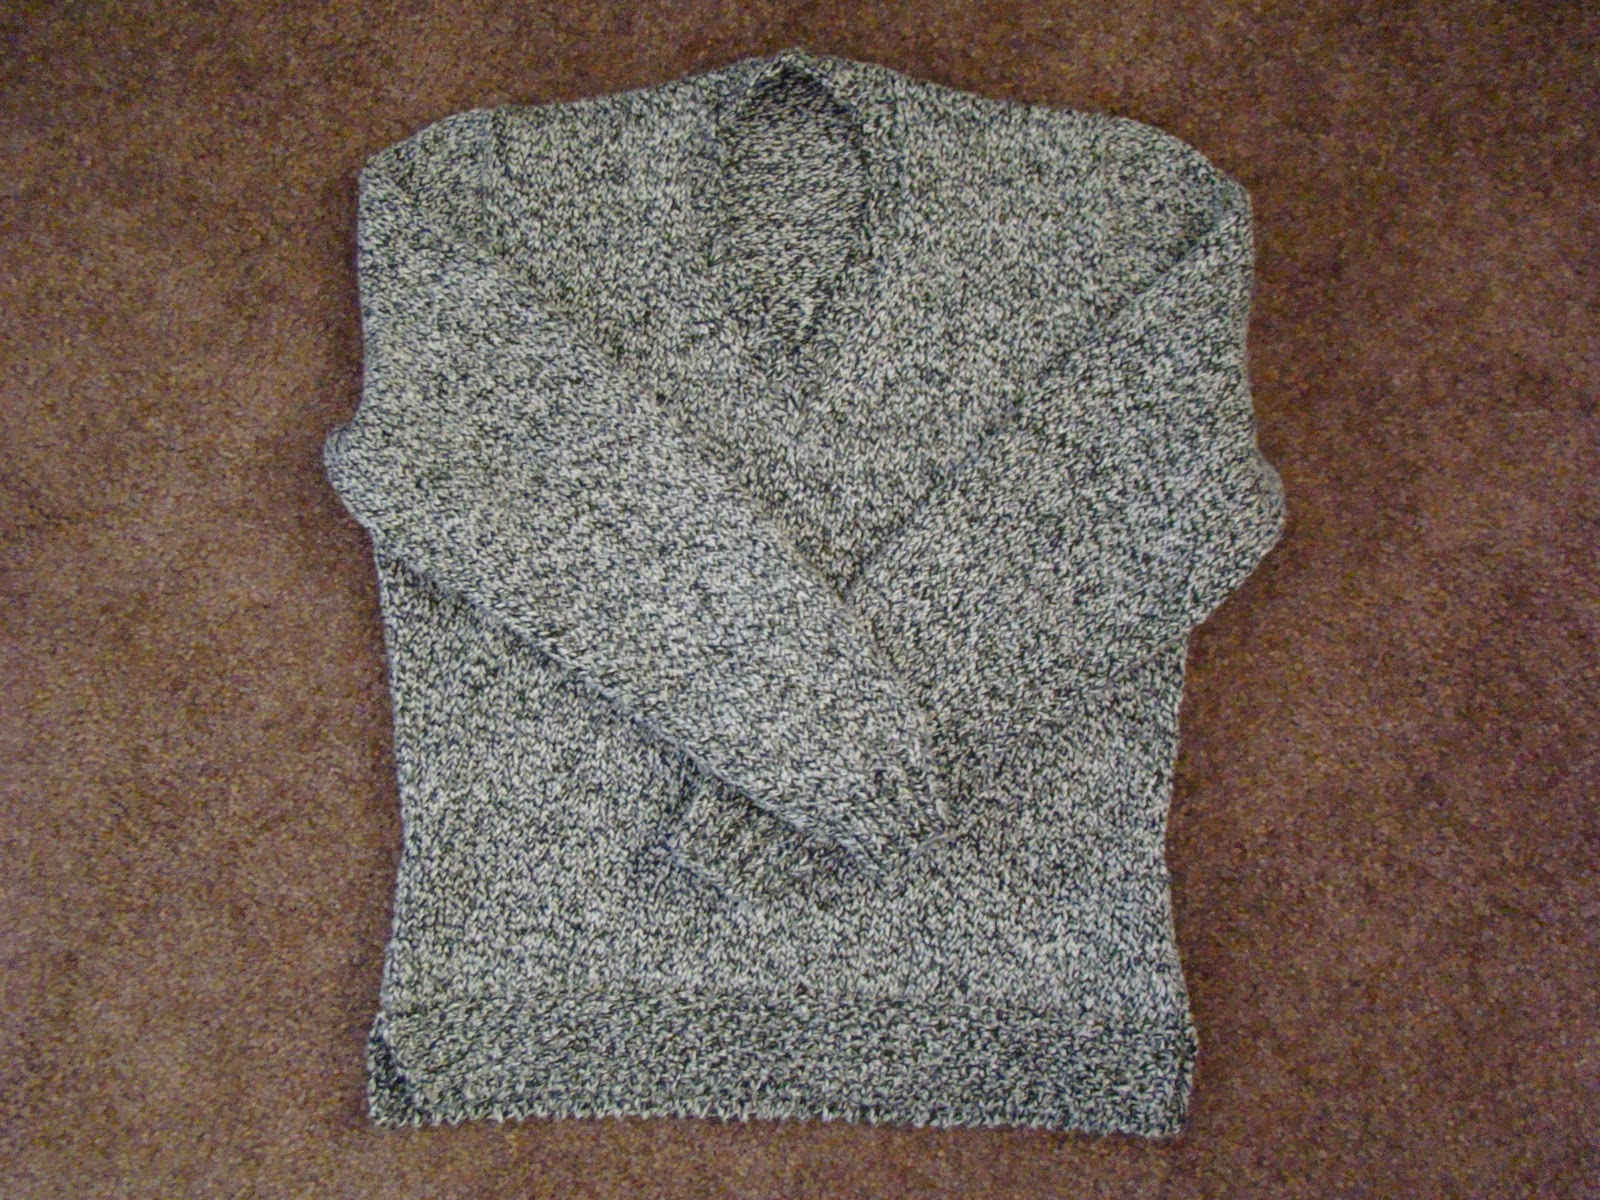 Knitting A Sweater Without A Pattern : Knackful knitter footies and a sweater